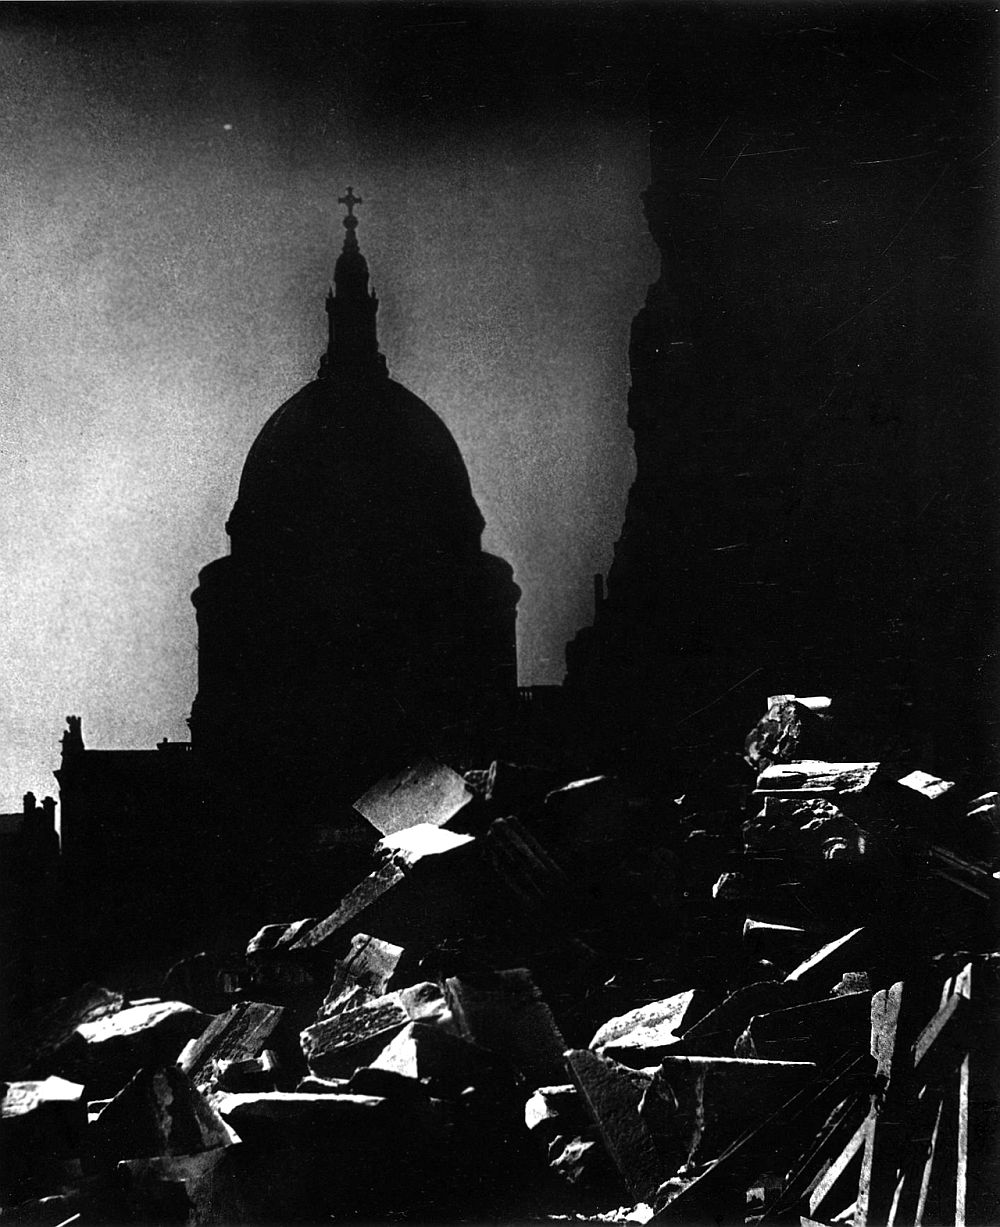 Bill Brandt St. Paul's Cathedral in the moonlight, 1942 Private collection Courtesy Bill Brandt Archive and Edwynn Houk Gallery © Bill Brandt / Bill Brandt Archive Ltd.